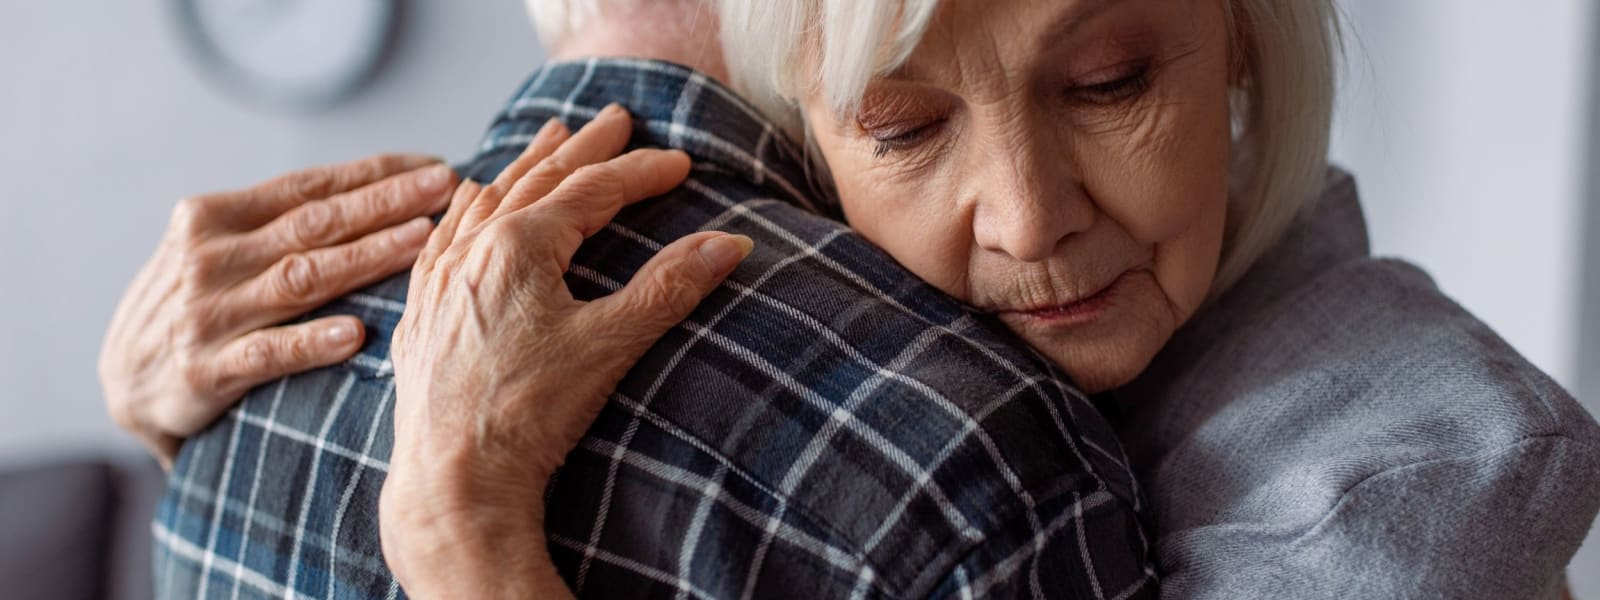 Dementia rates higher in men with genetic haemochromatosis